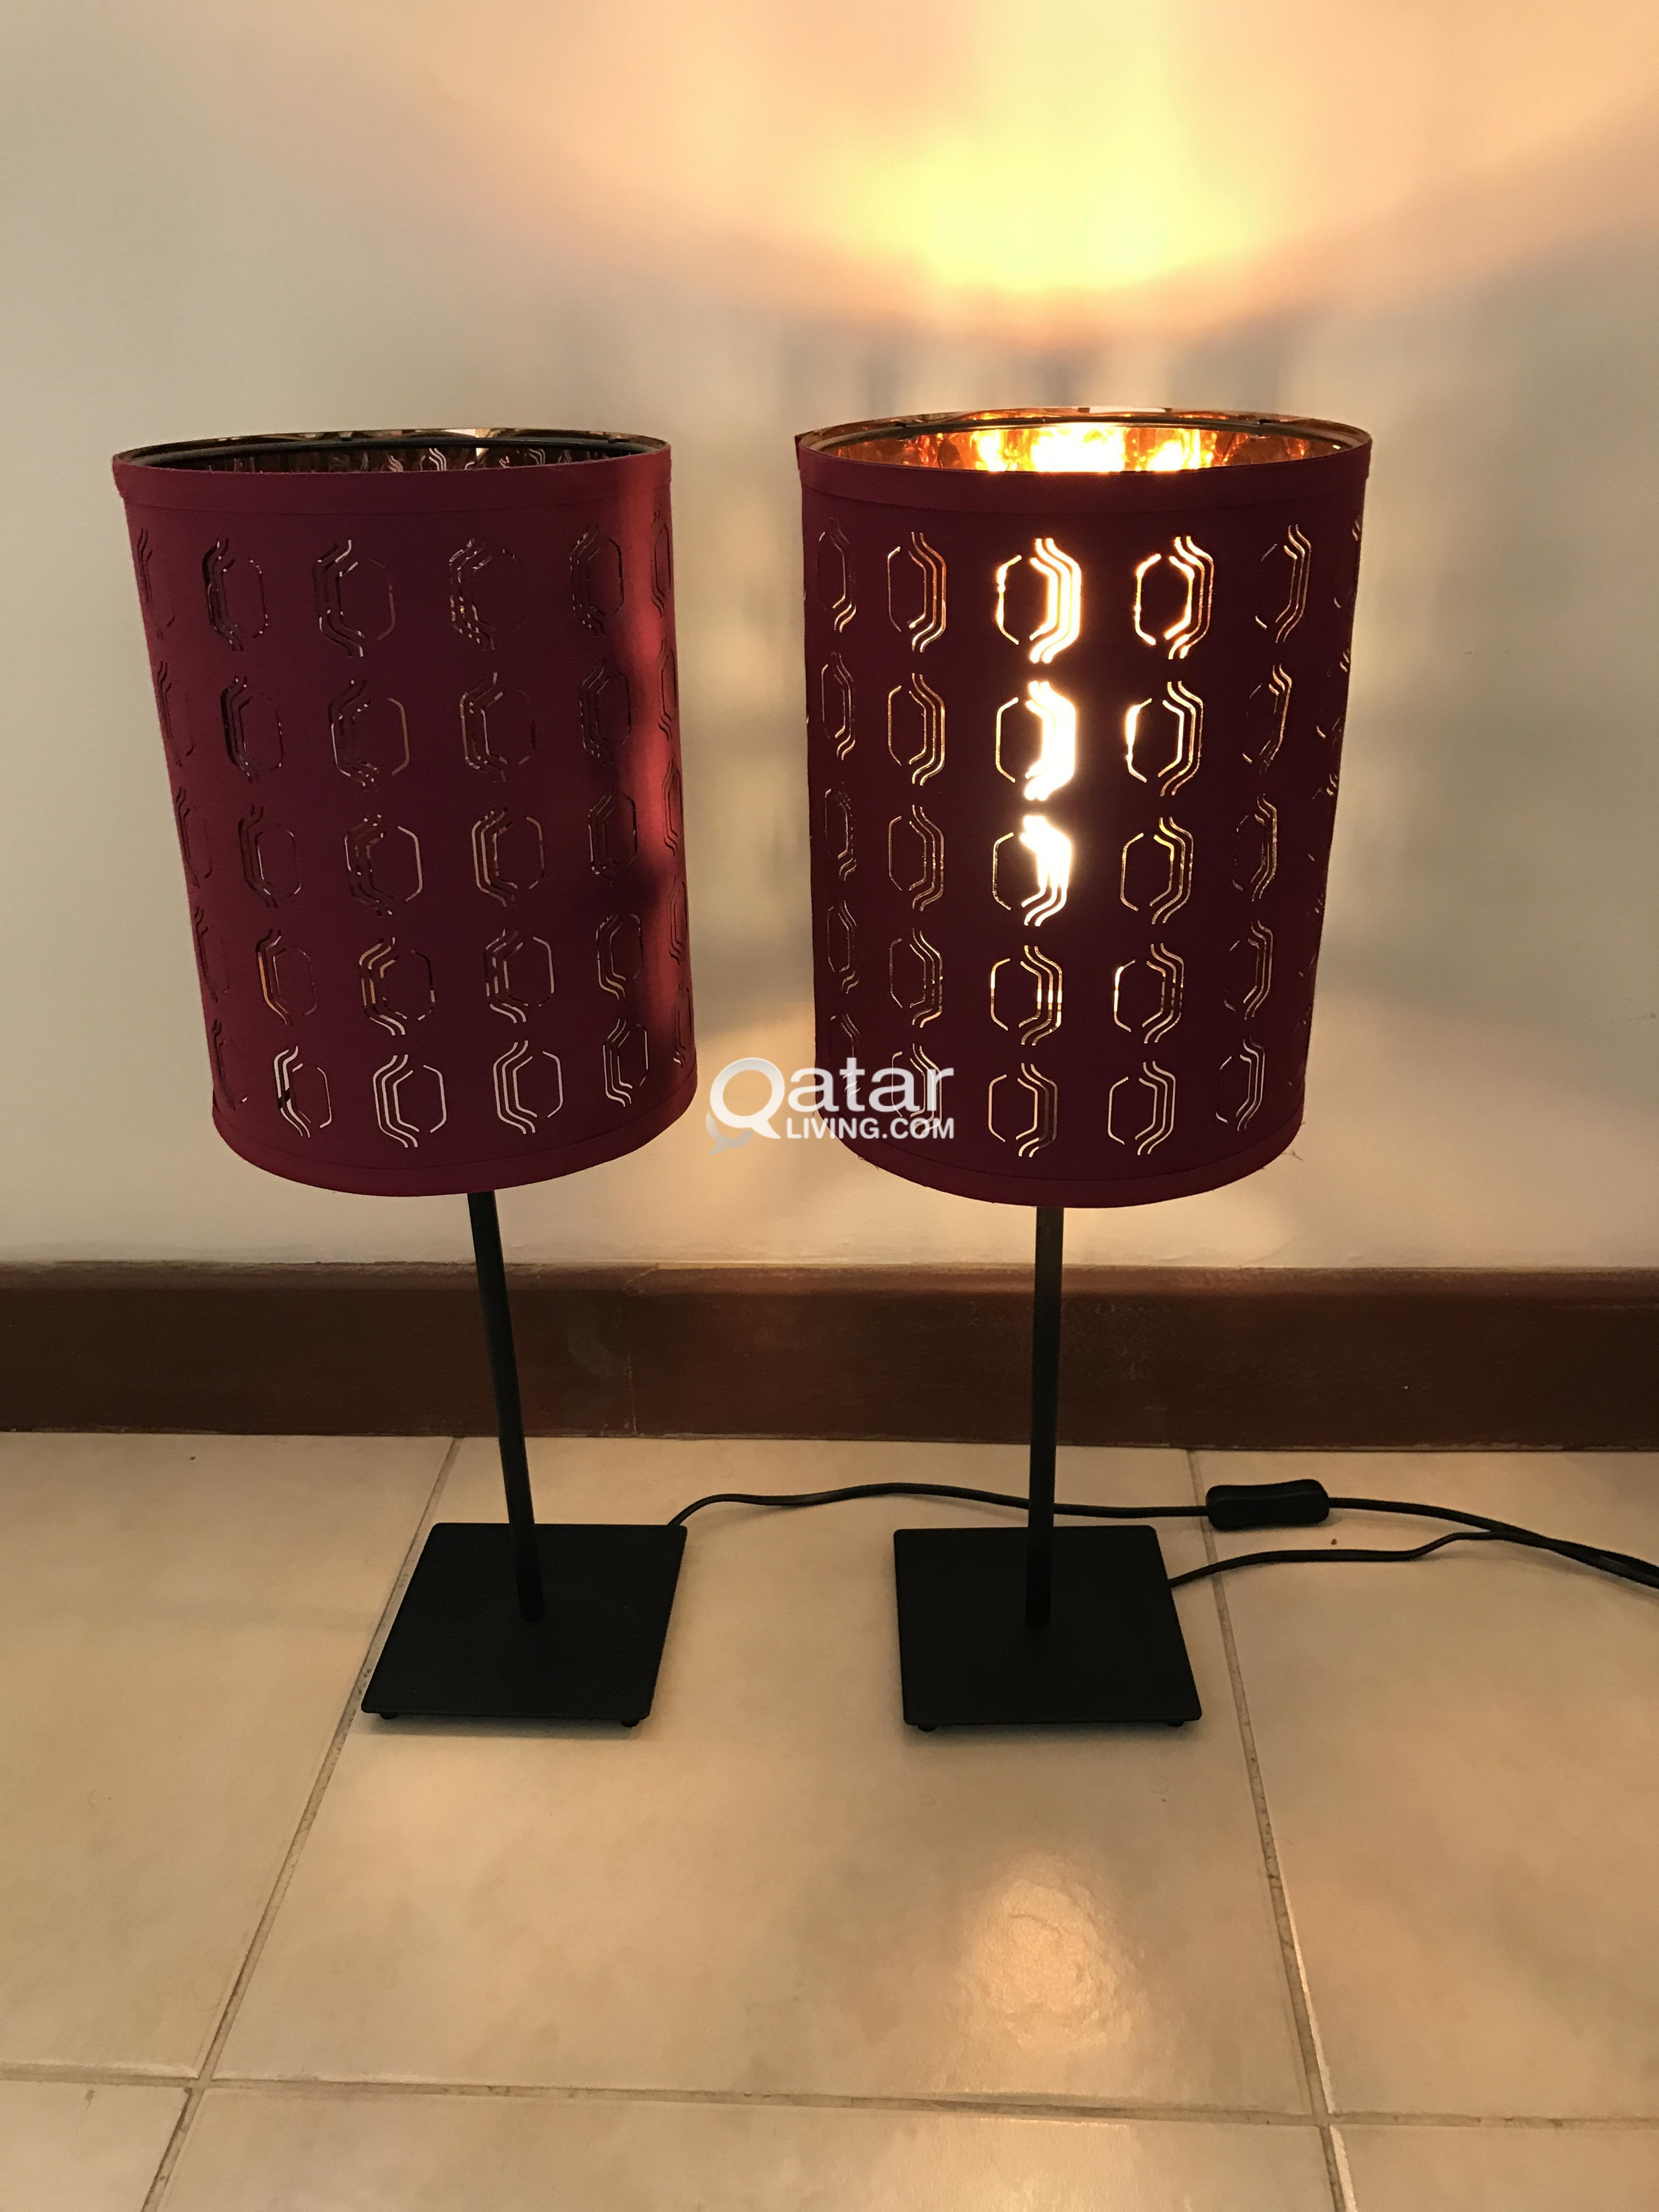 Two black ikea hemma table lamps with pinkcopper nymo lamp shades title title title title information two black ikea hemma table lamps aloadofball Choice Image